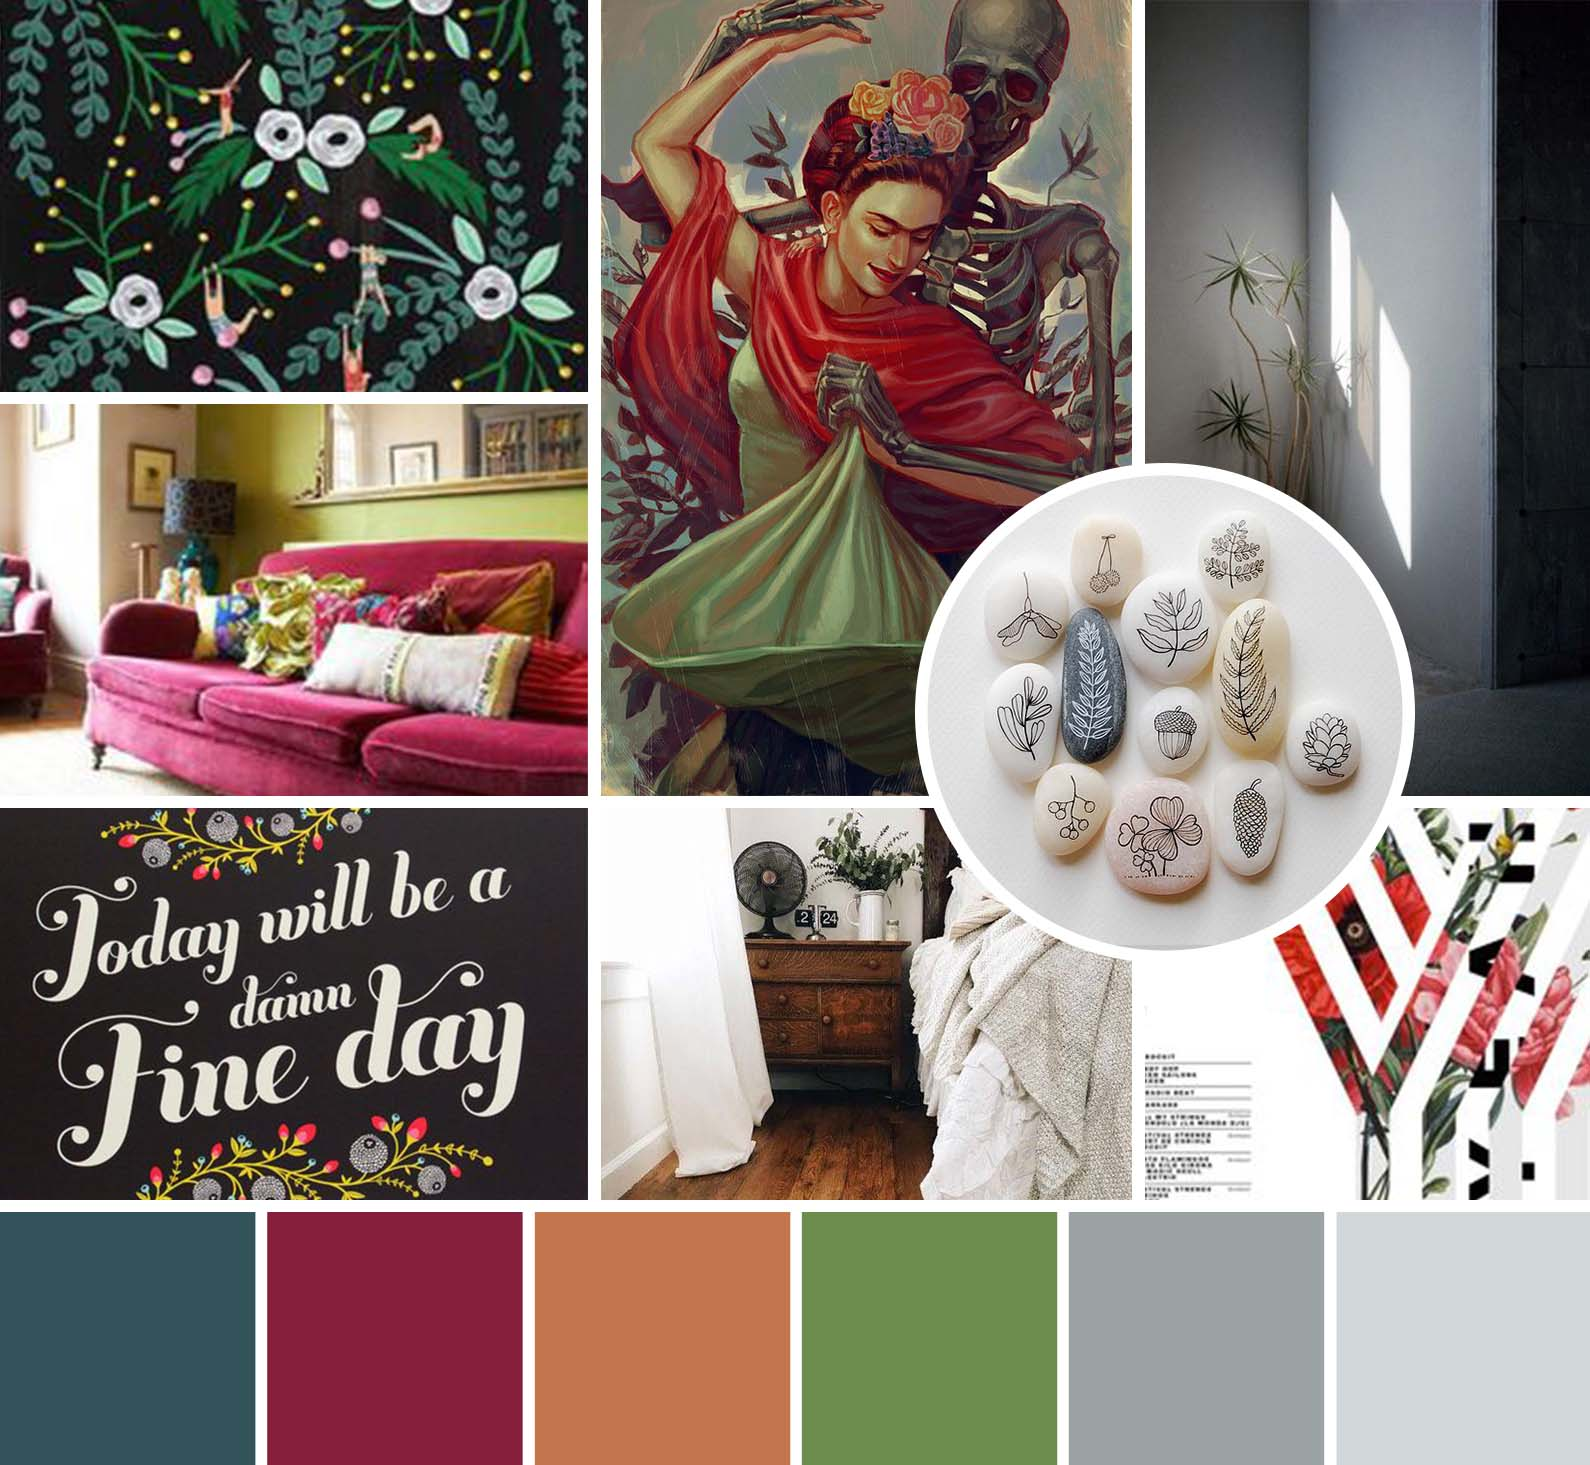 bright, bold, and modern mood board design